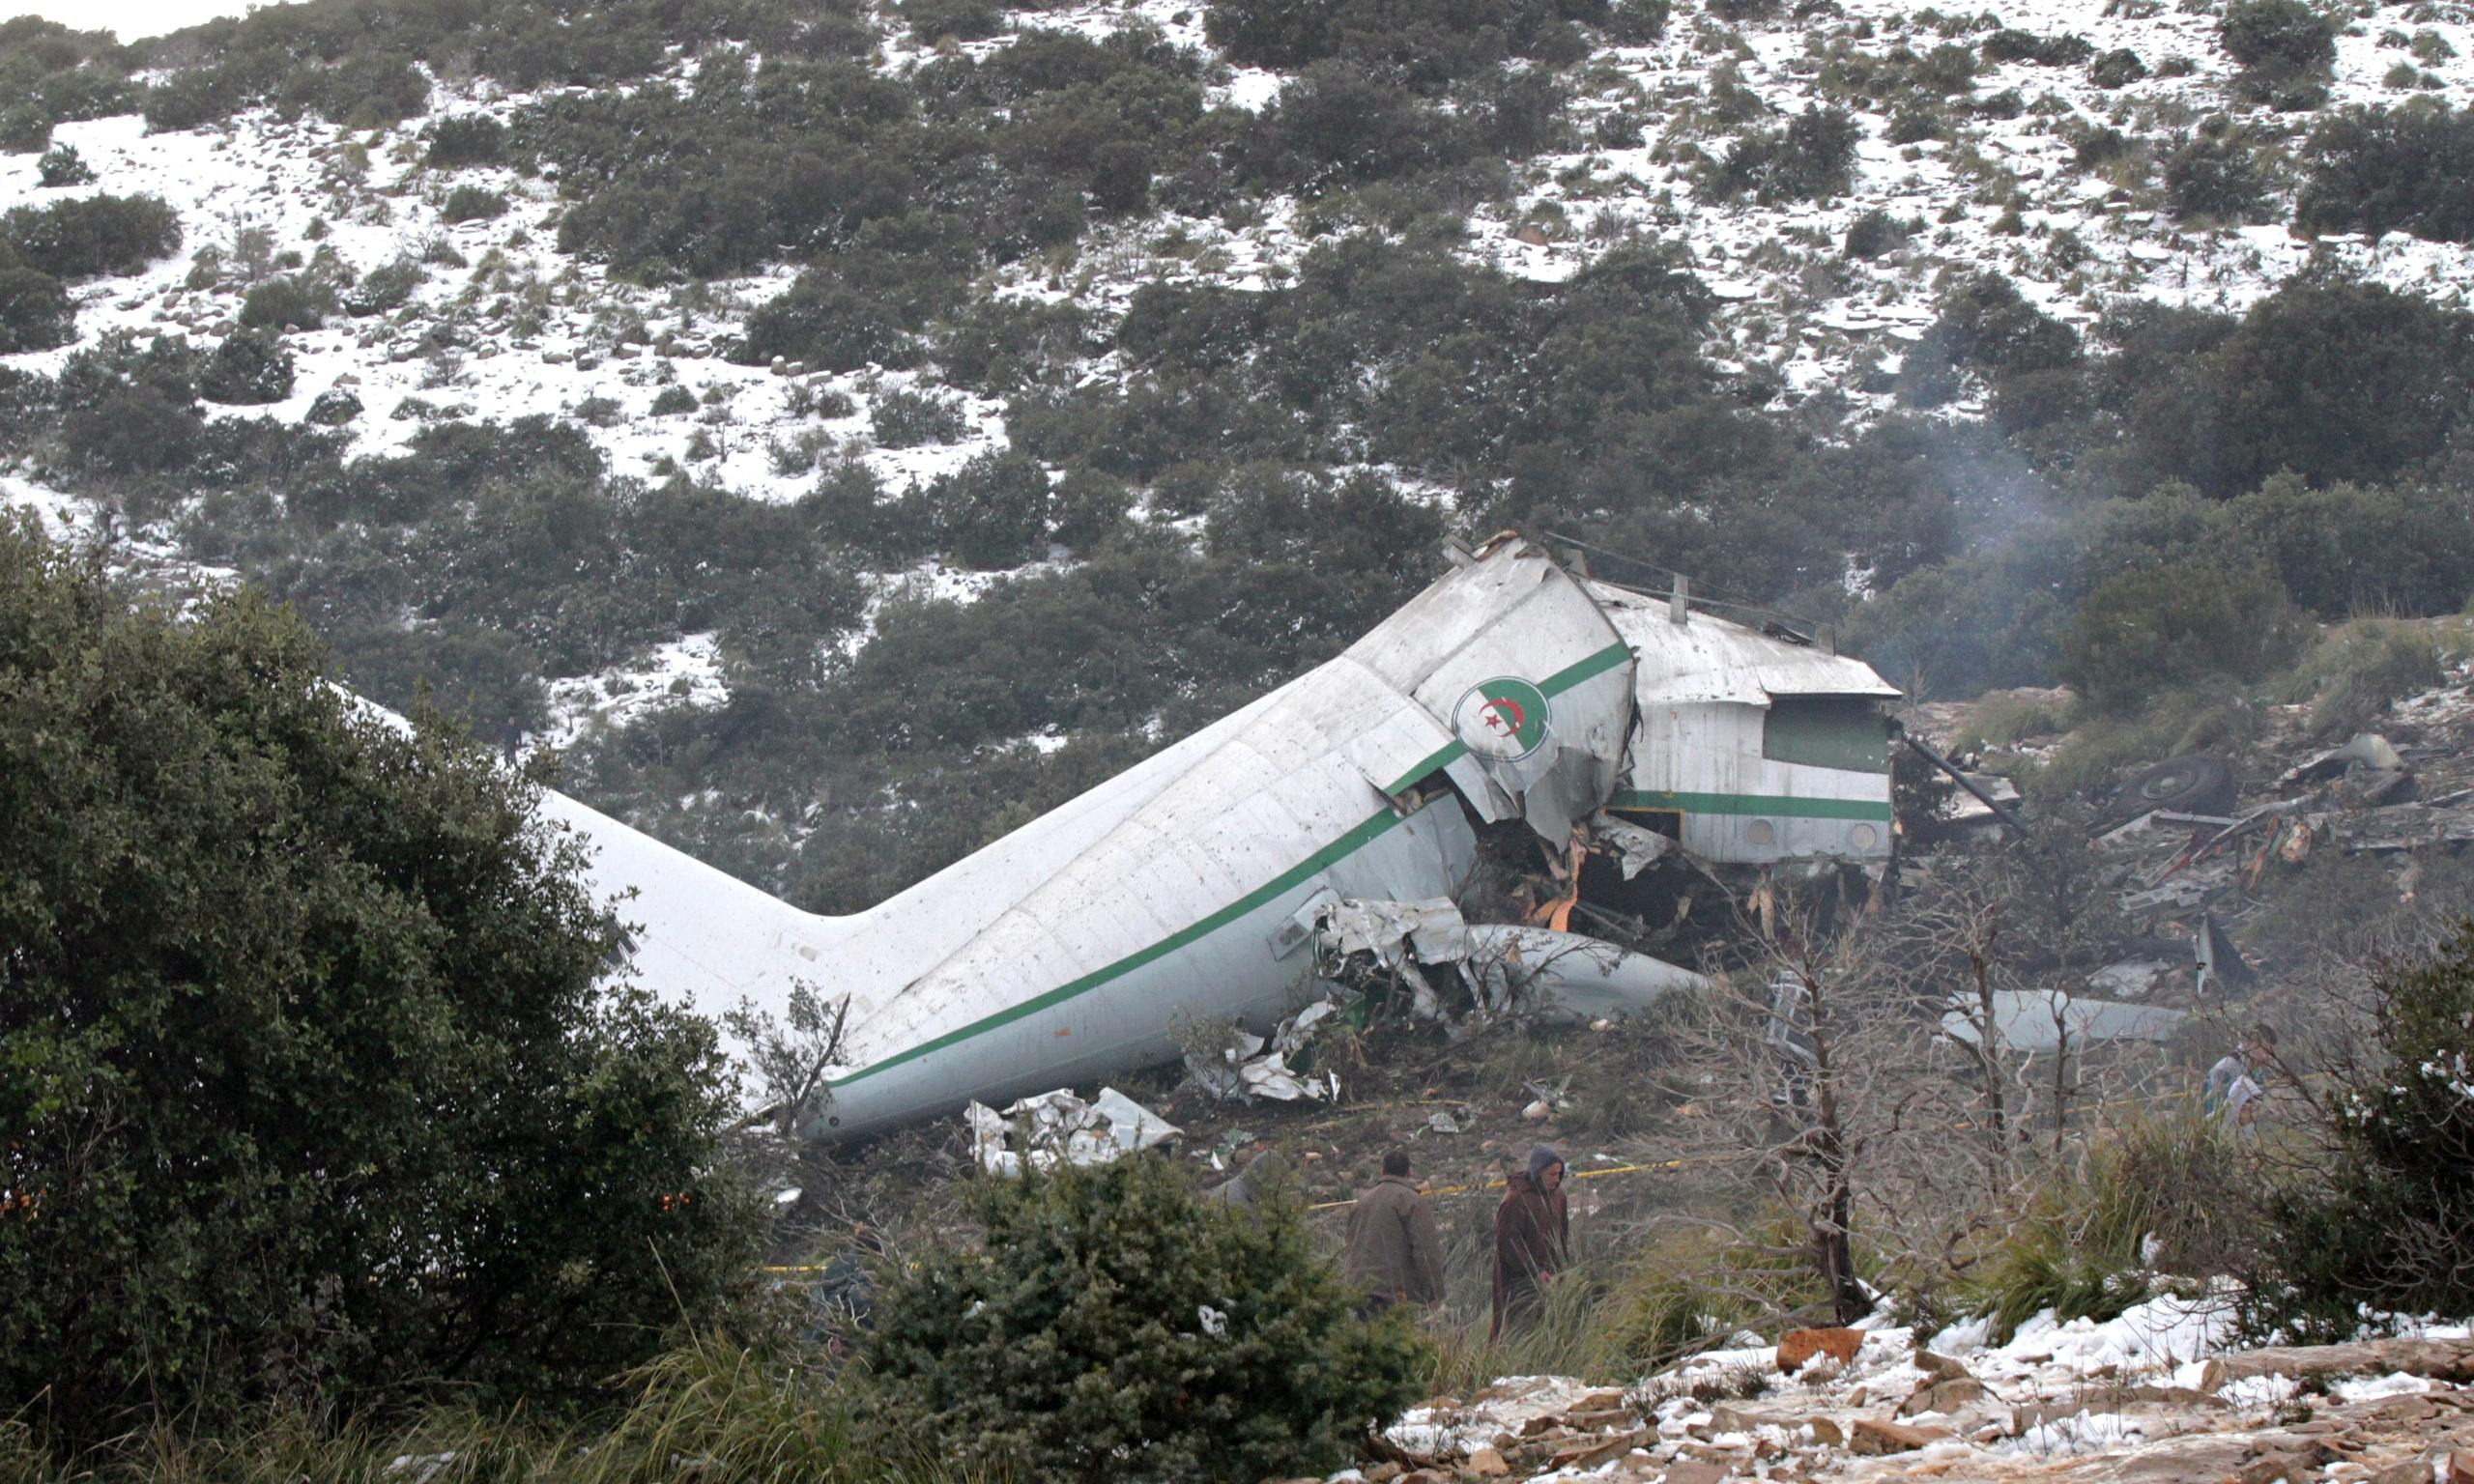 Plane Crash Bodies Photos Algeria-plane-crash-014.jpg